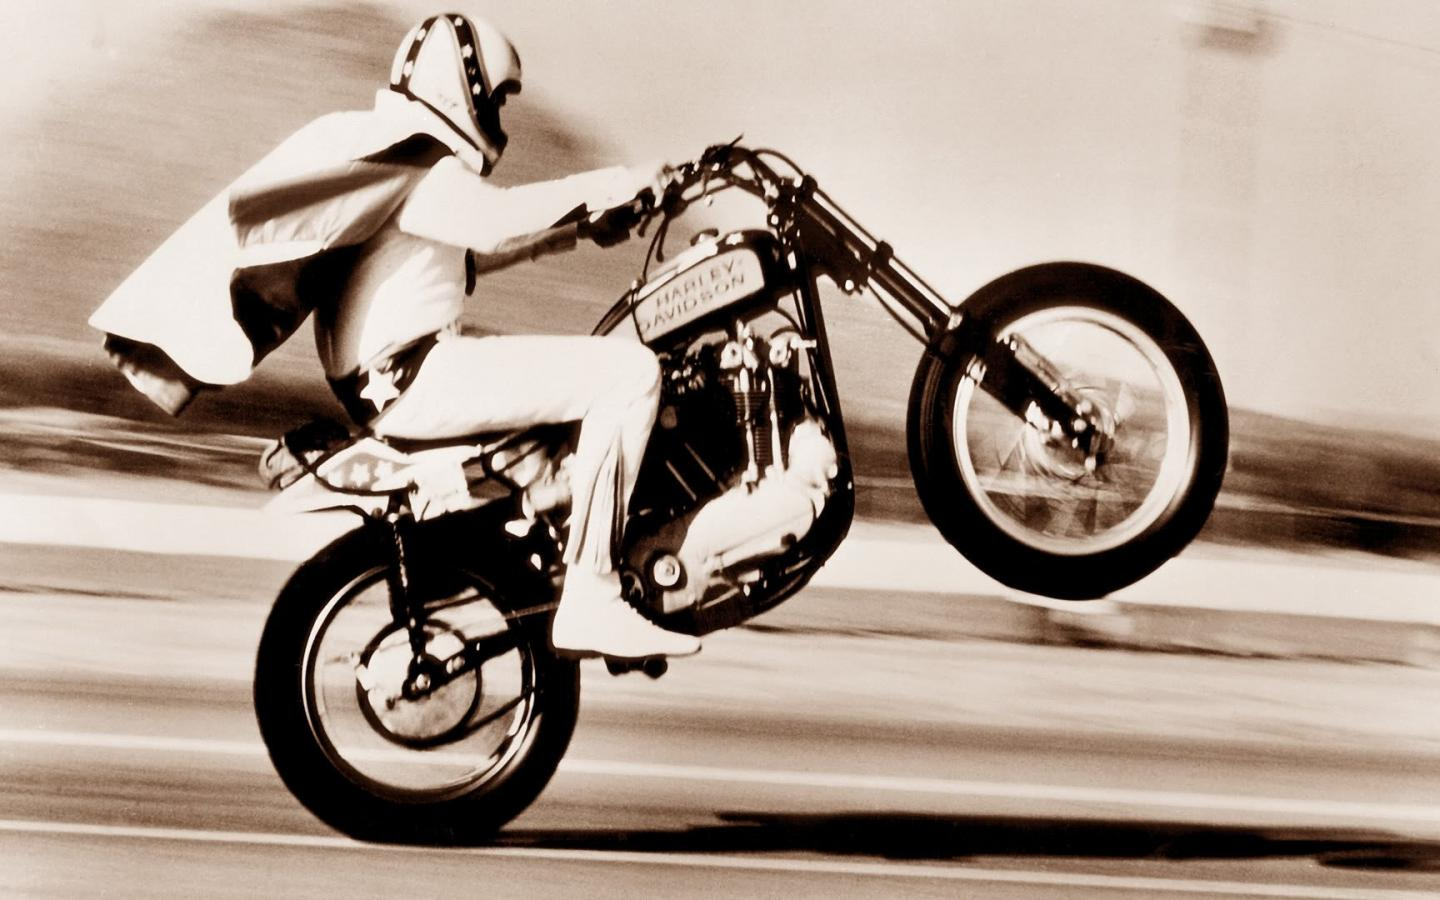 1440x900 - Evel Knievel Wallpapers 25